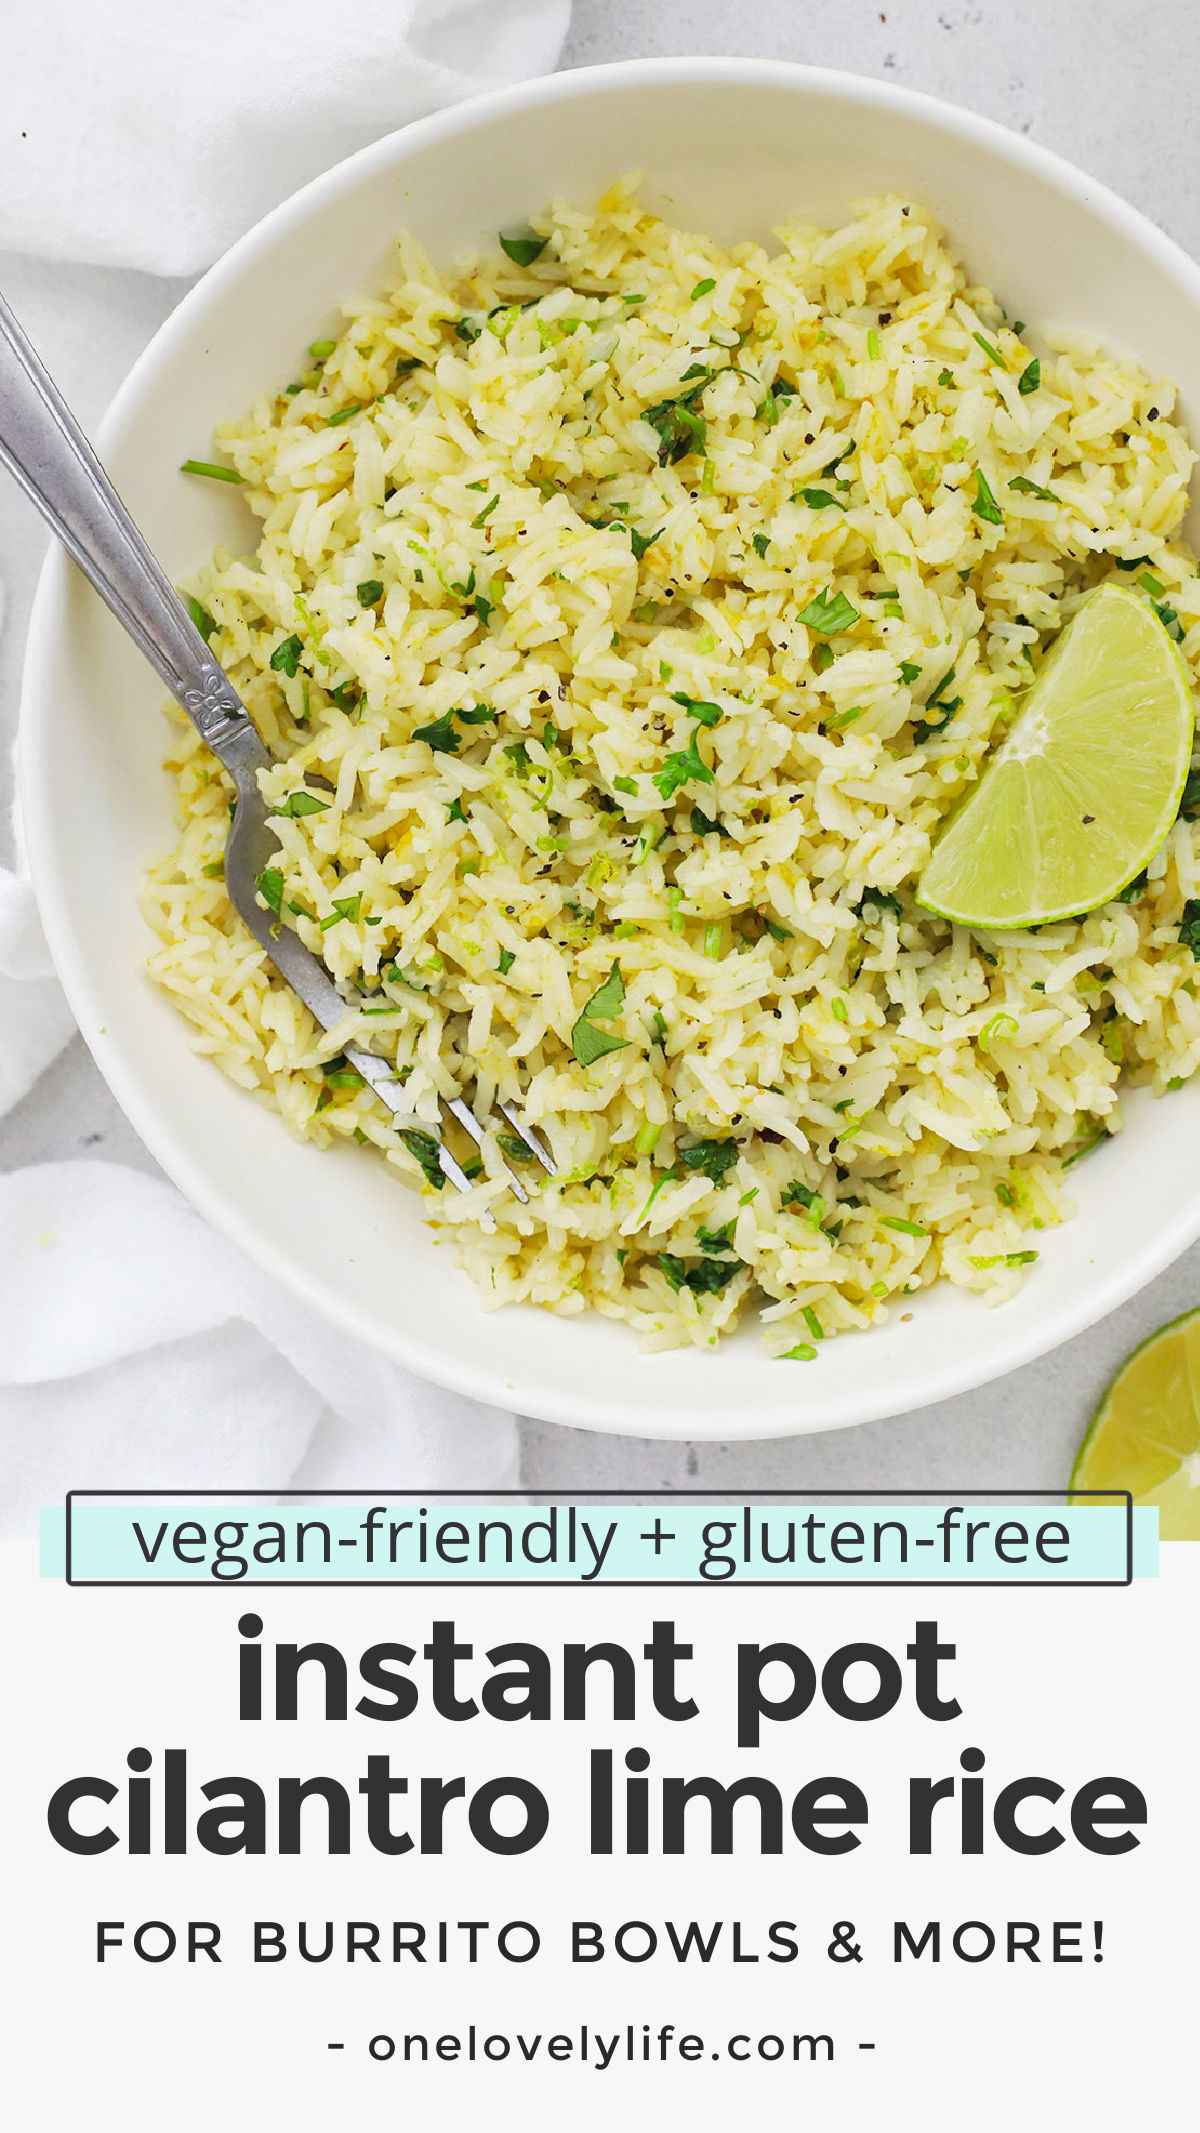 Instant Pot Cilantro Lime Rice - Restaurant style cilantro lime rice is easier than ever thanks to the pressure cooker! This method will give you fluffy, flavorful rice perfect as a side dish, tucked into burrito bowls, burritos & more! (Vegan-friendly, gluten-free) // Chipotle Cilantro Lime Rice // Cafe Rio Cilantro Lime Rice // Pressure Cooker Cilantro Lime Rice // #sidedish #cilantrolimerice #rice #burritobowls #tacos #burritos #texmex #taconight #glutenfree #vegetarian